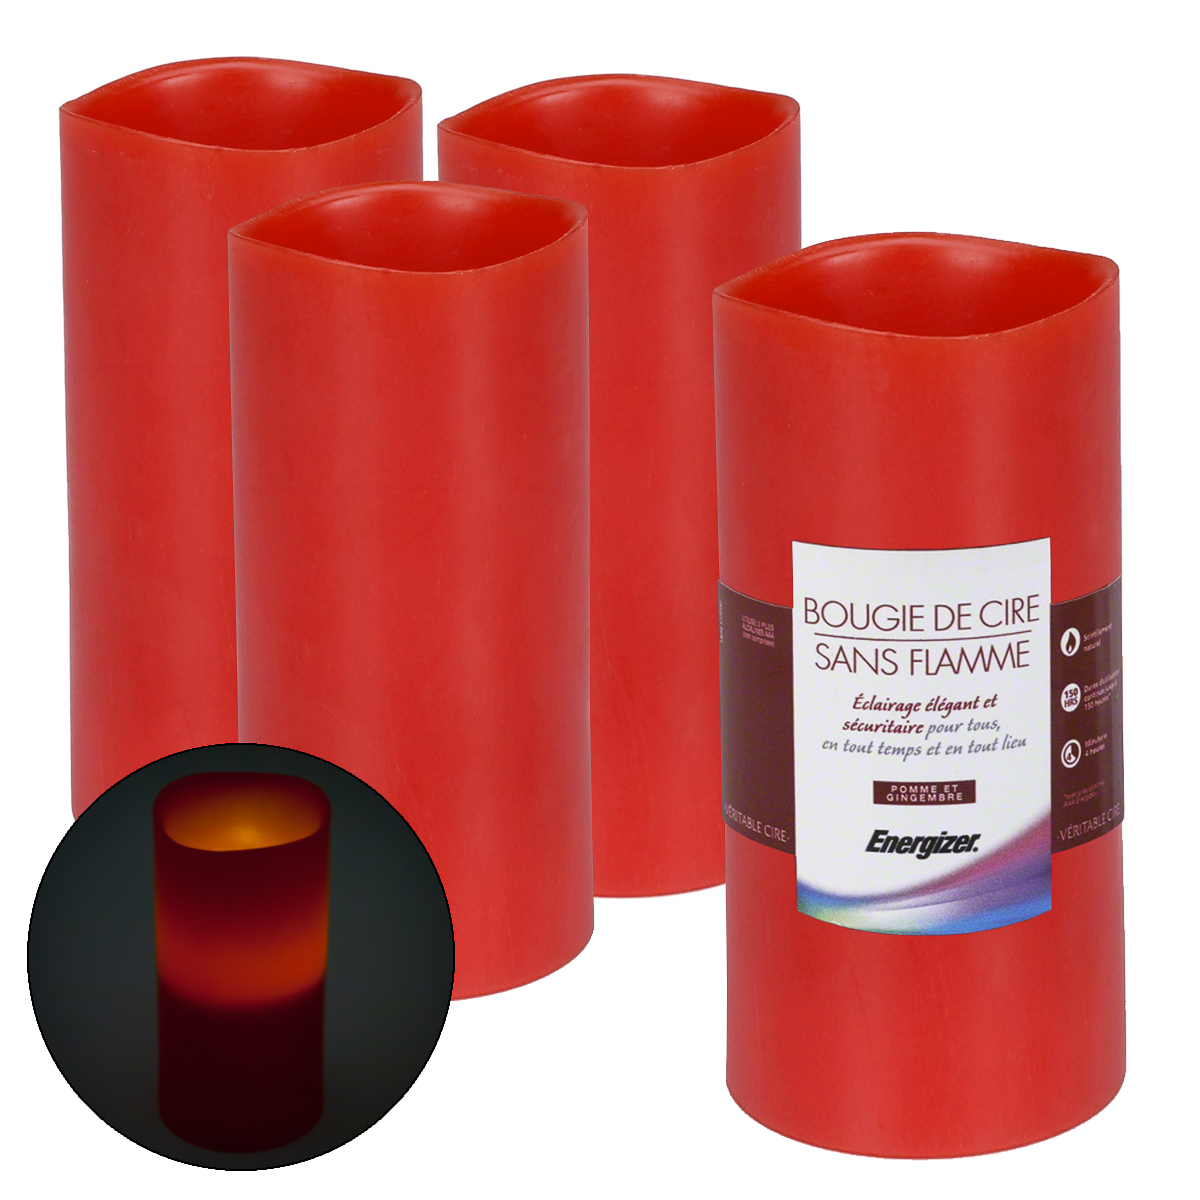 4 energizer led flameless wax candle timer flicker pillar ginger apple scented - Flameless Candles With Timer